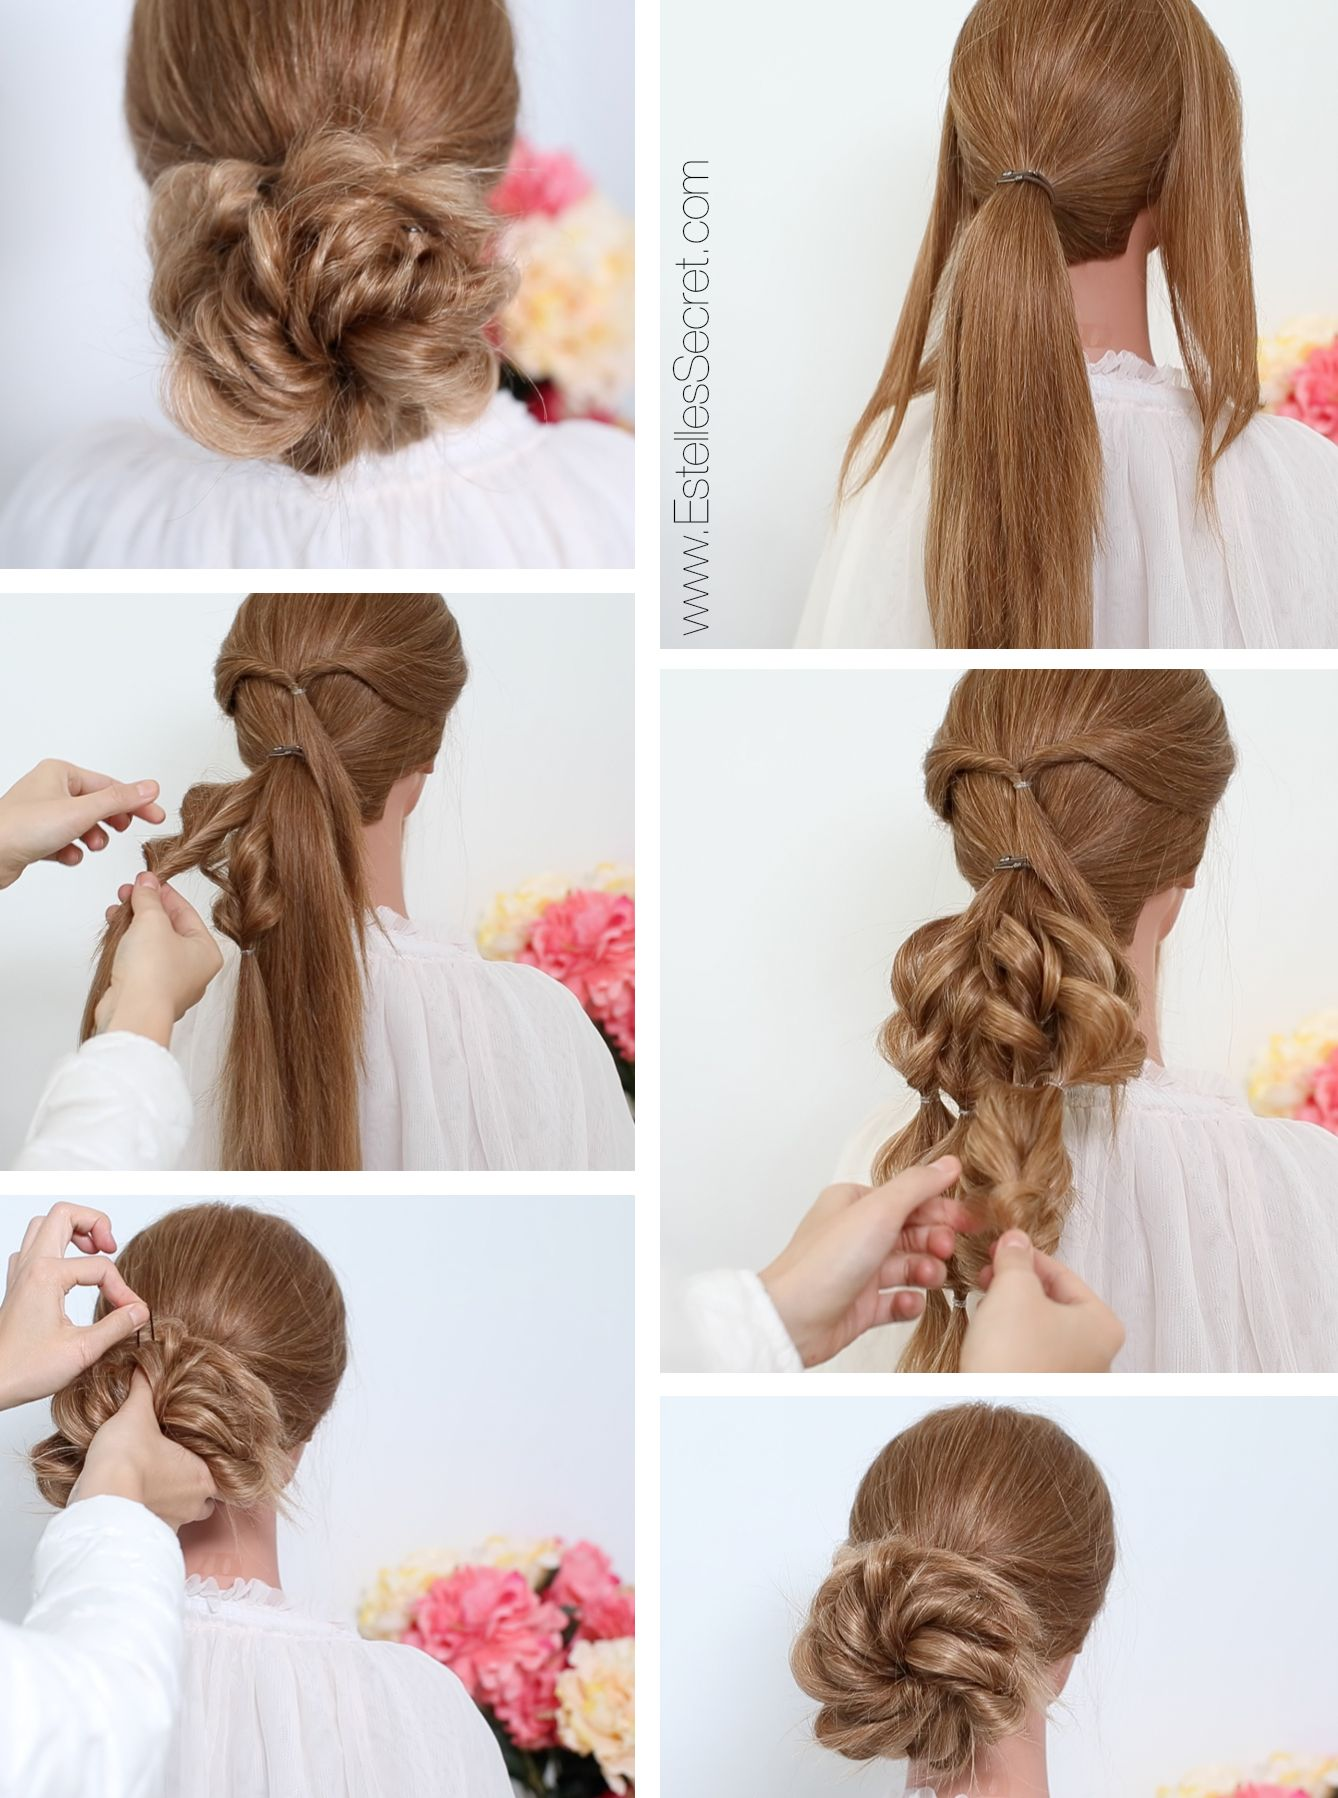 Bridal Low Bun Hairstyle using Estelles Secret hair extensions. See ...